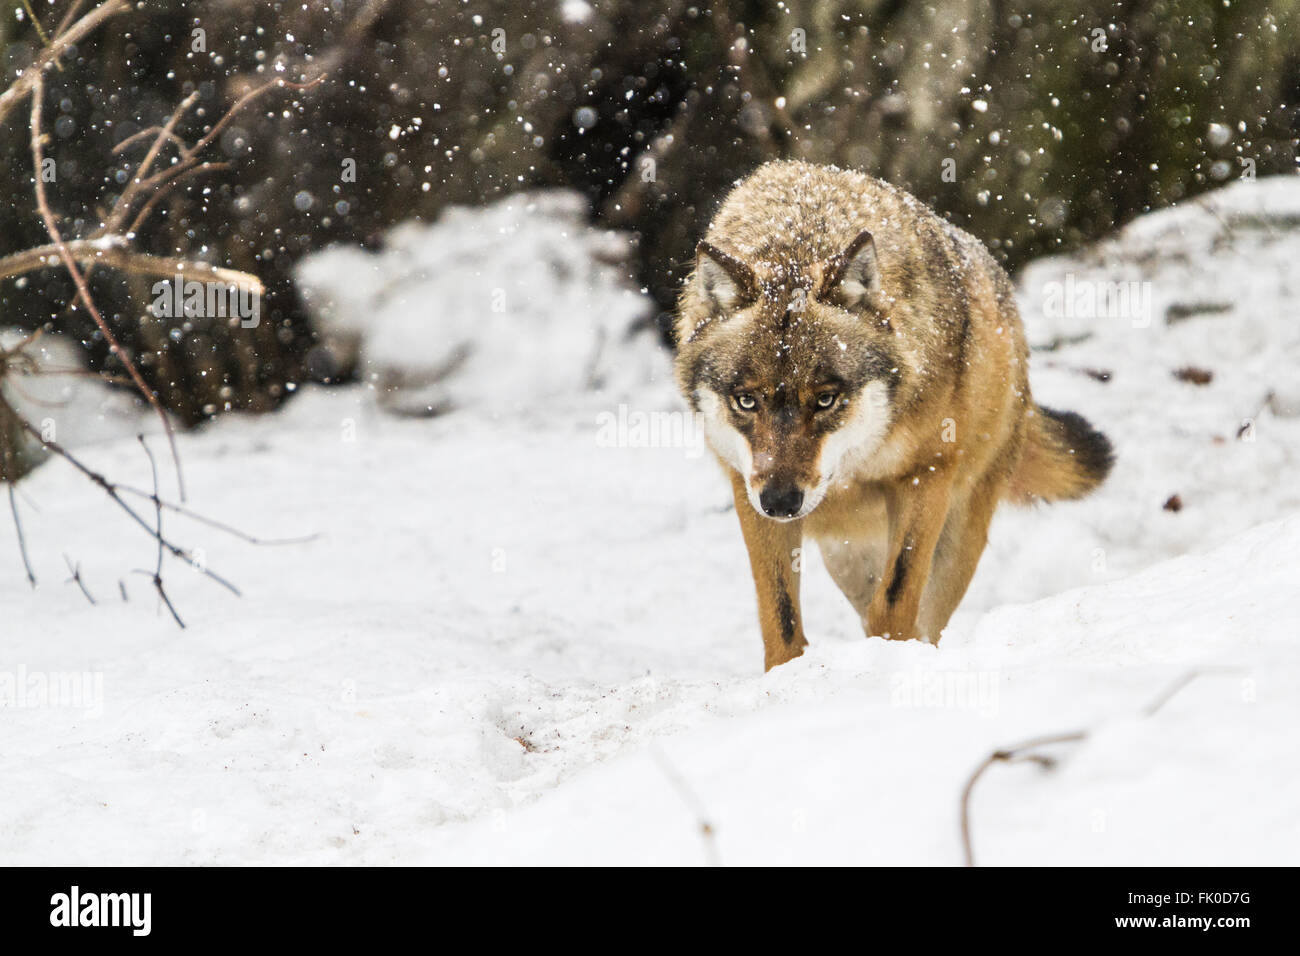 European grey wolf (Canis lupus)walking during a snowstorm in the forest. - Stock Image